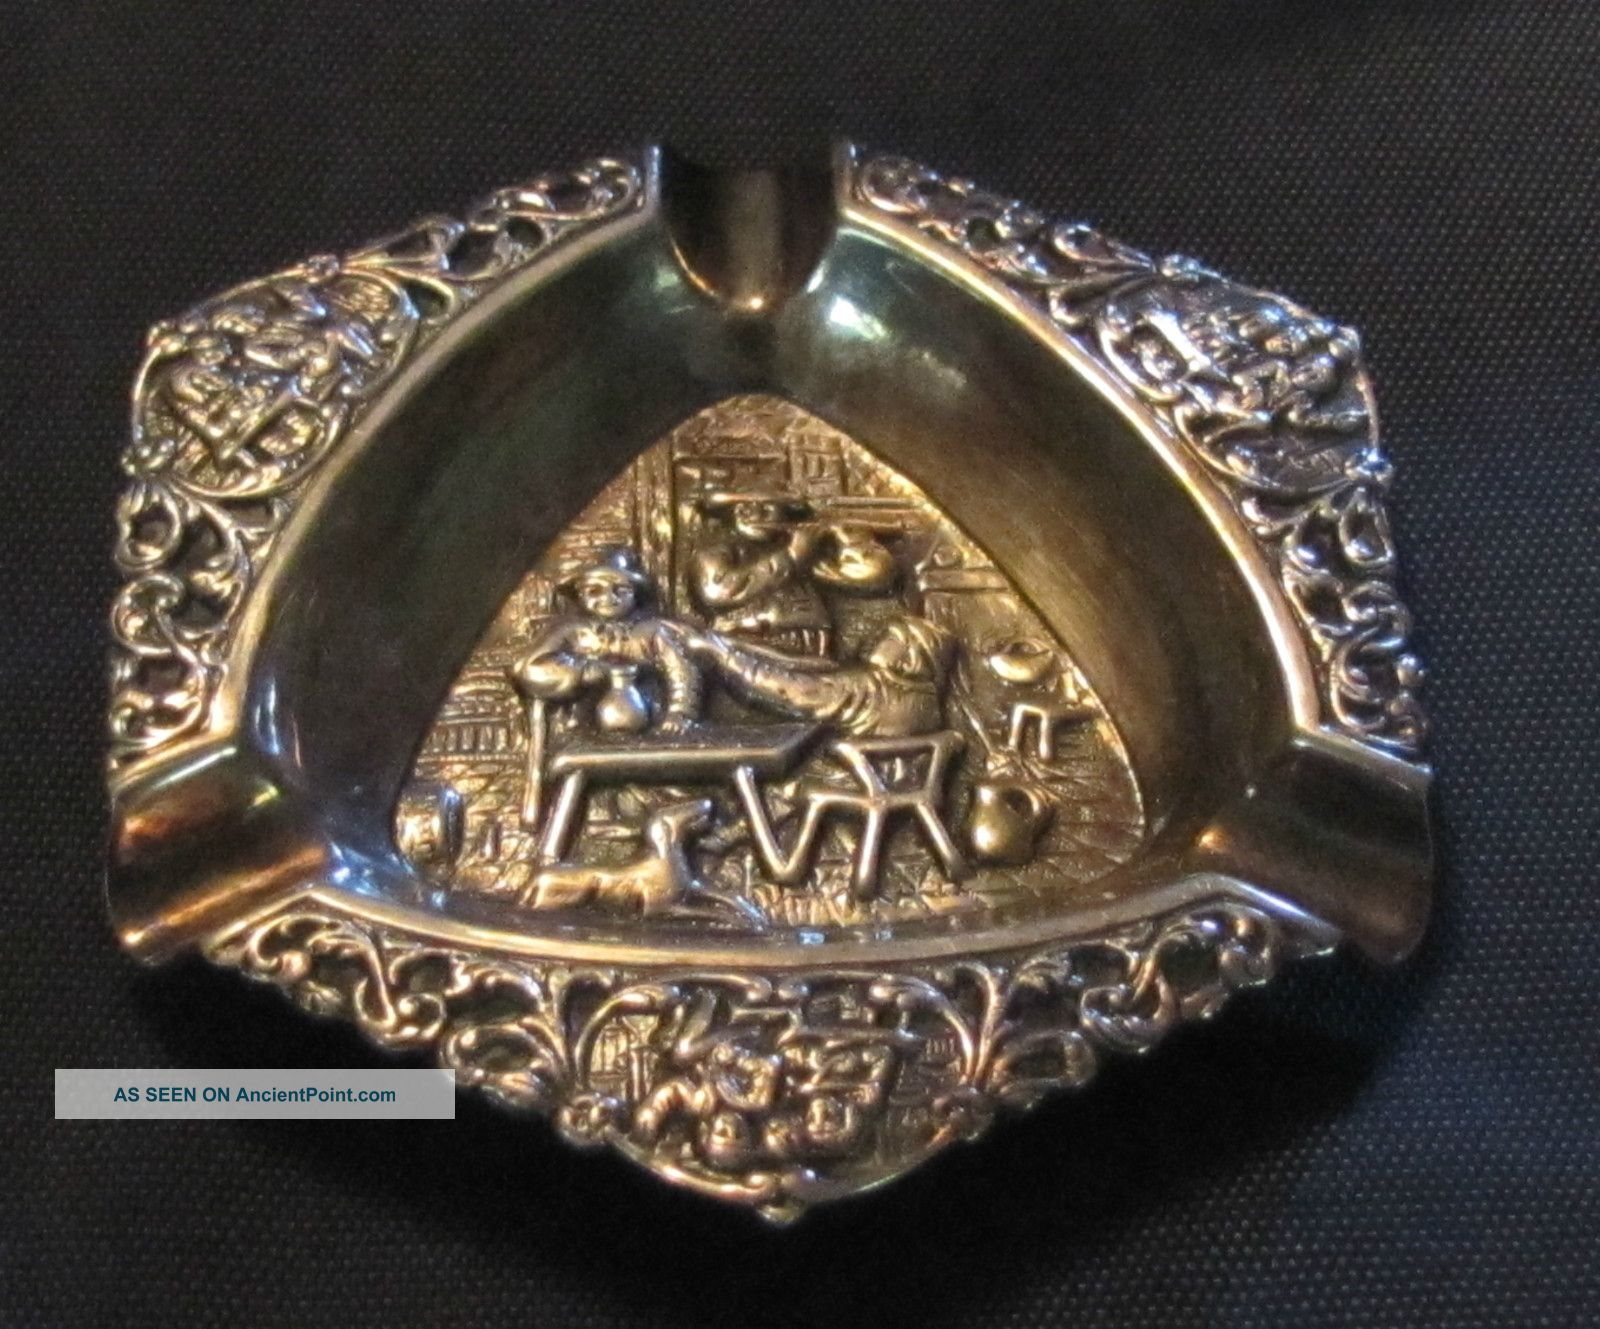 Vintage Hooijkaas Dutch Hh 90 Silver Repousse Ashtray Ornate Pub Scene 3